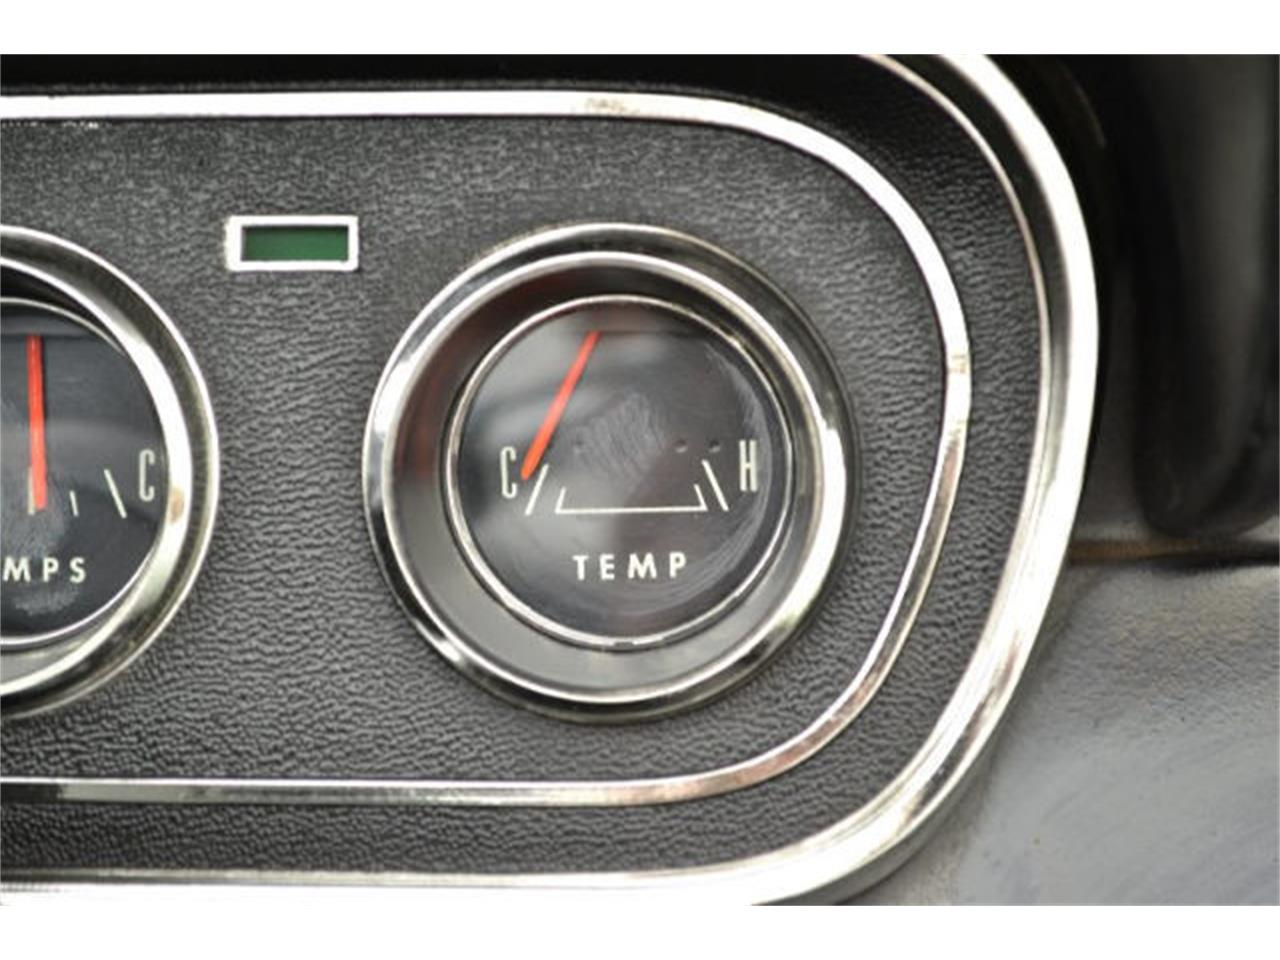 Large Picture of Classic '66 Ford Mustang - $39,995.00 - JBCM